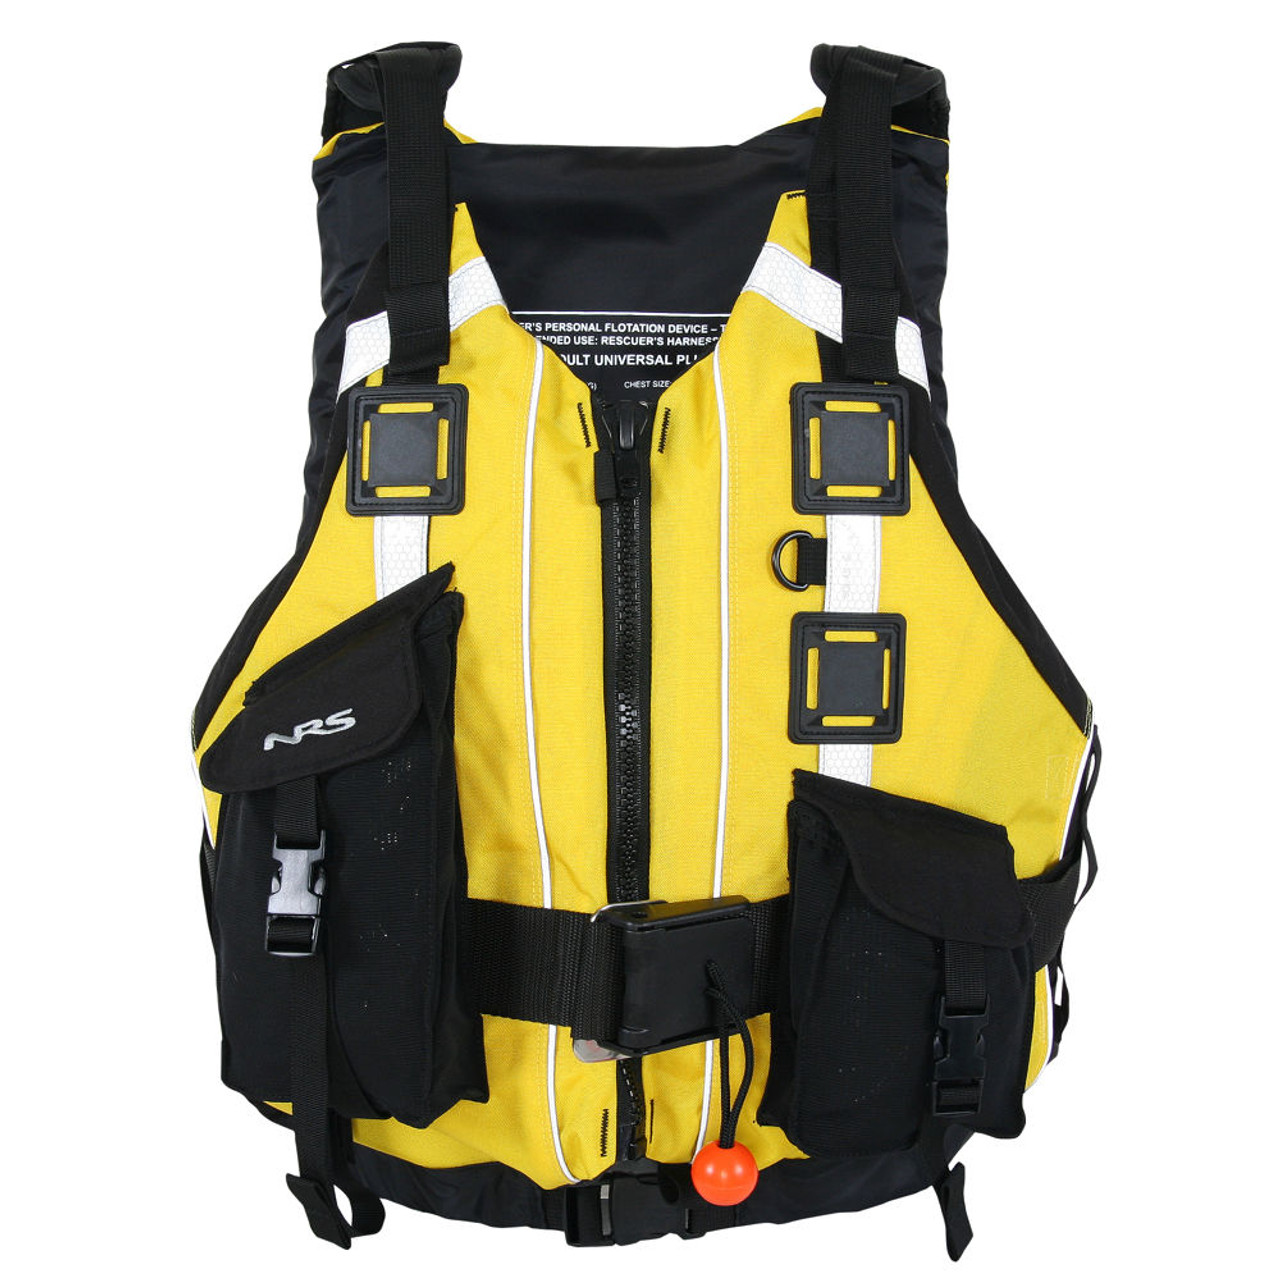 NRS Rapid Rescuer Life Jacket - PFD Kayak, Rafting, Paddle, SUP